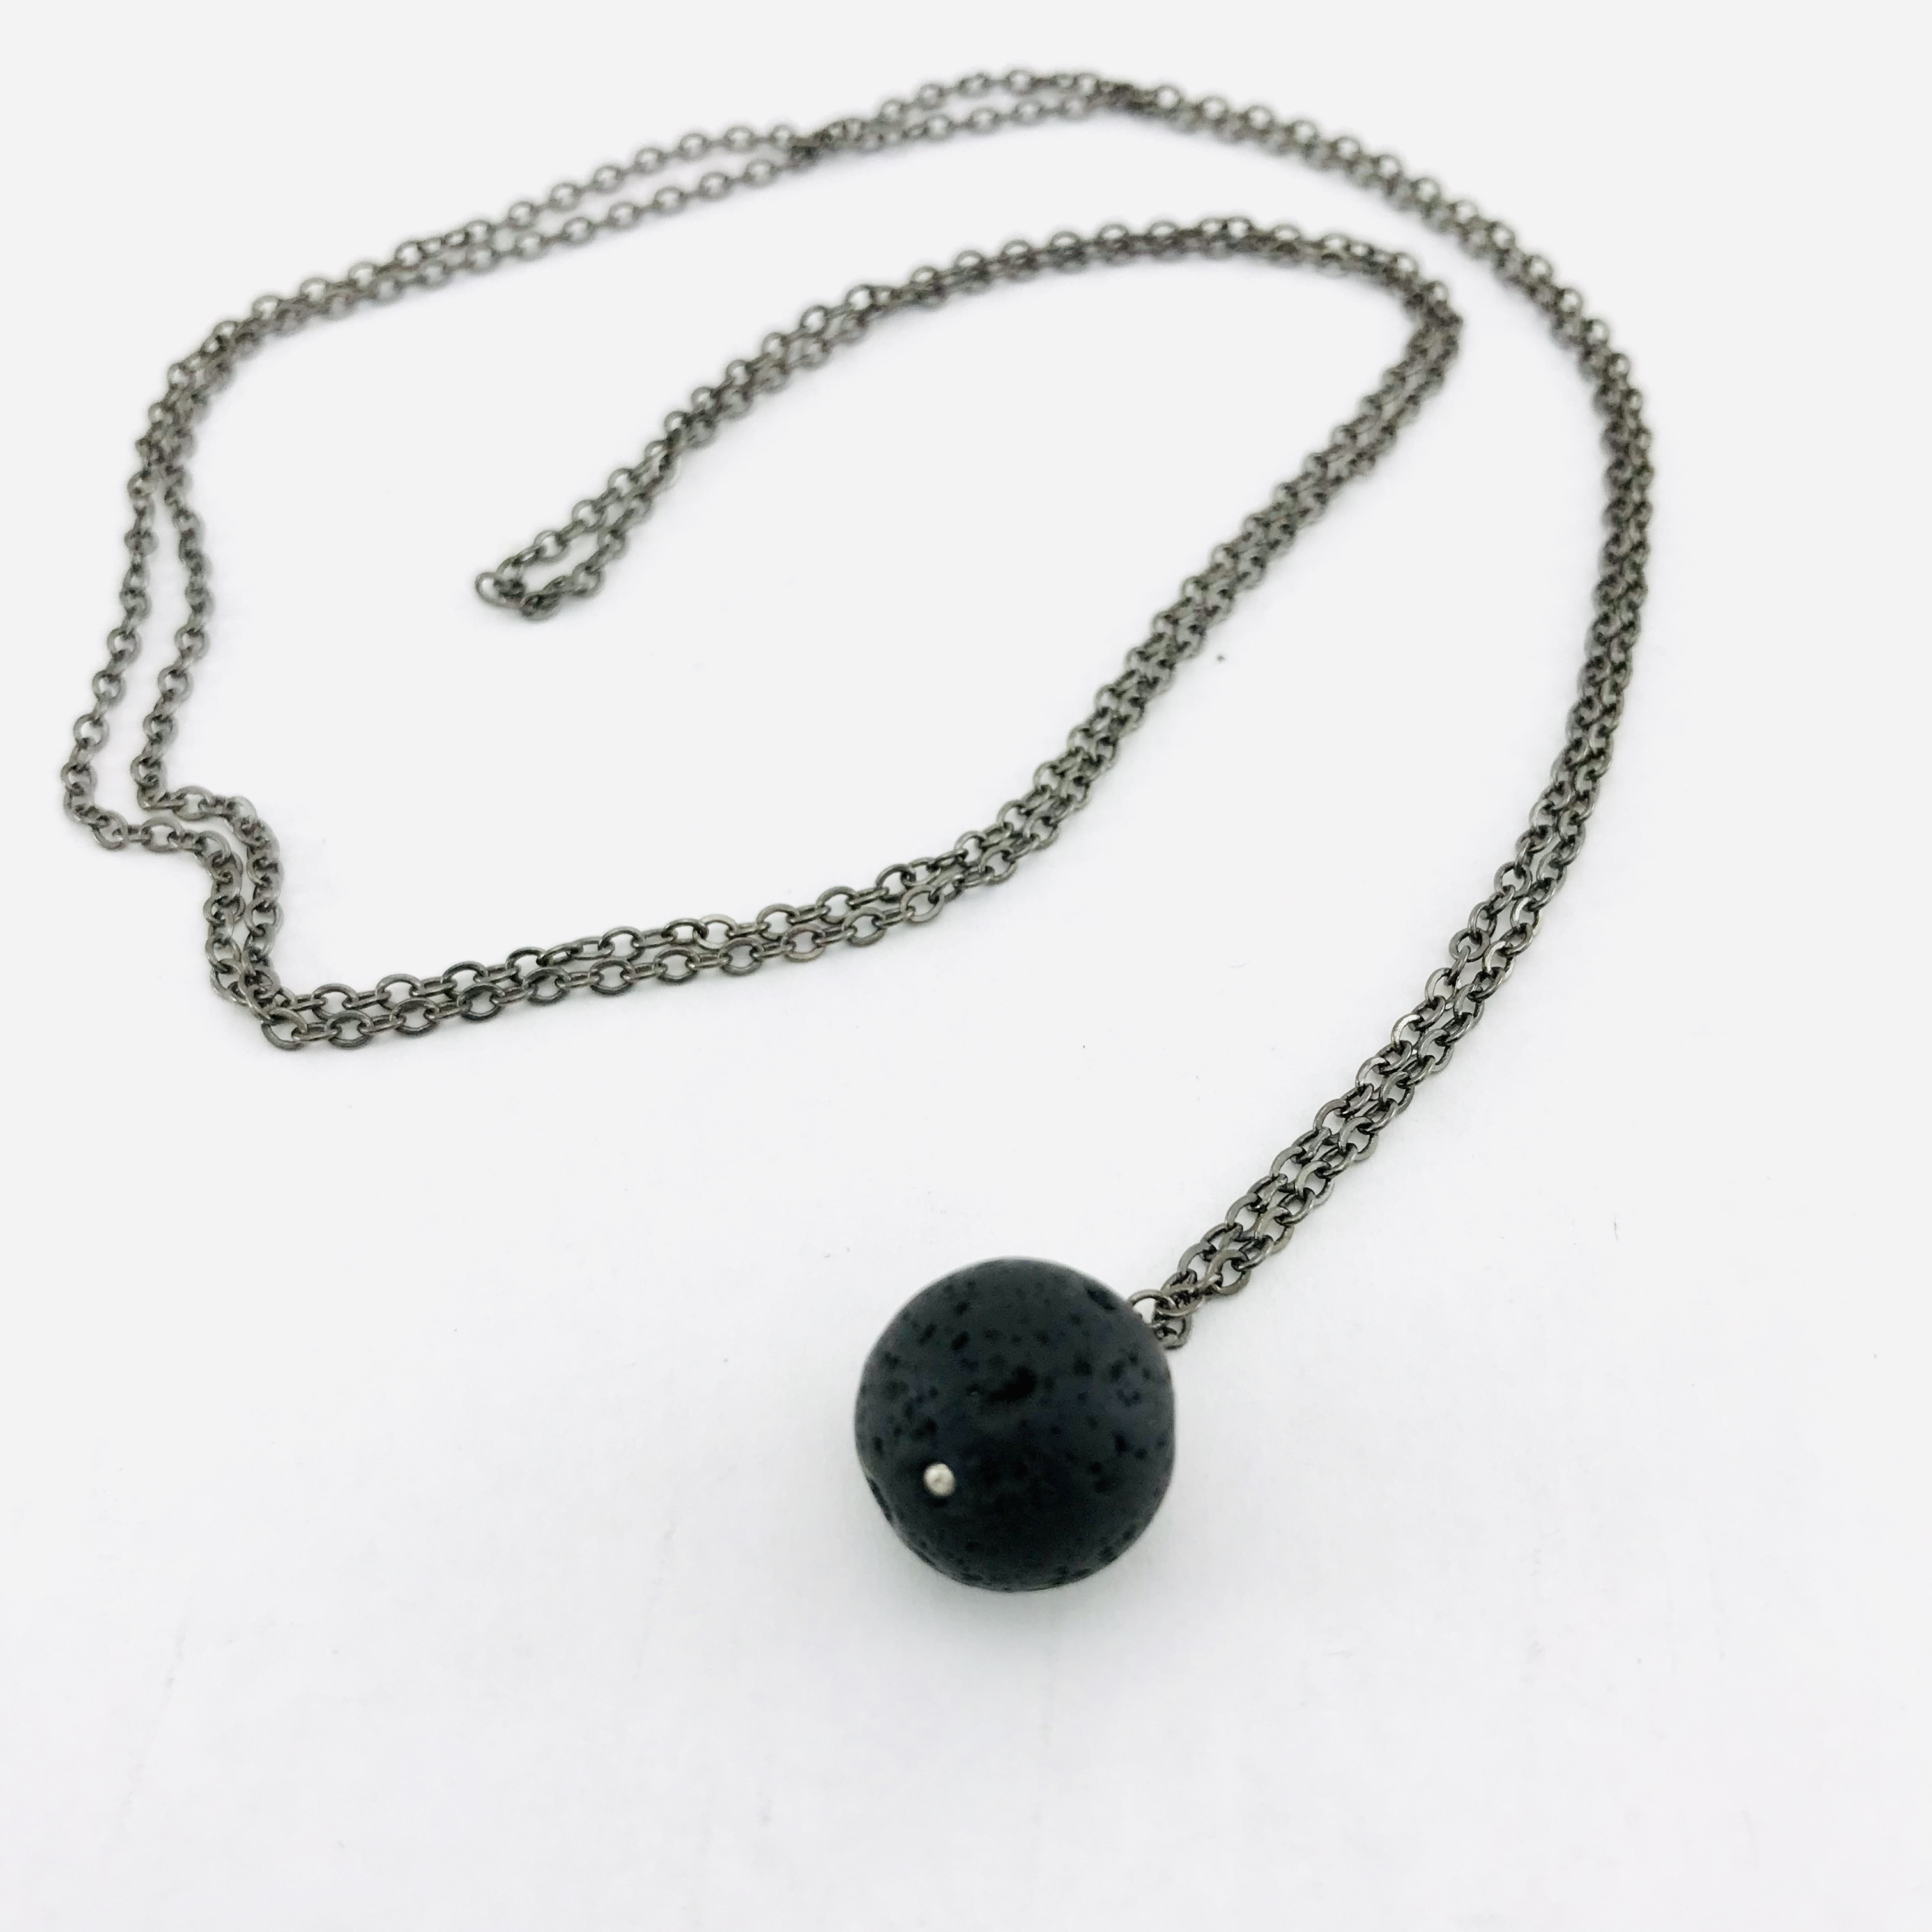 The Natural Round Lava Stone Necklace